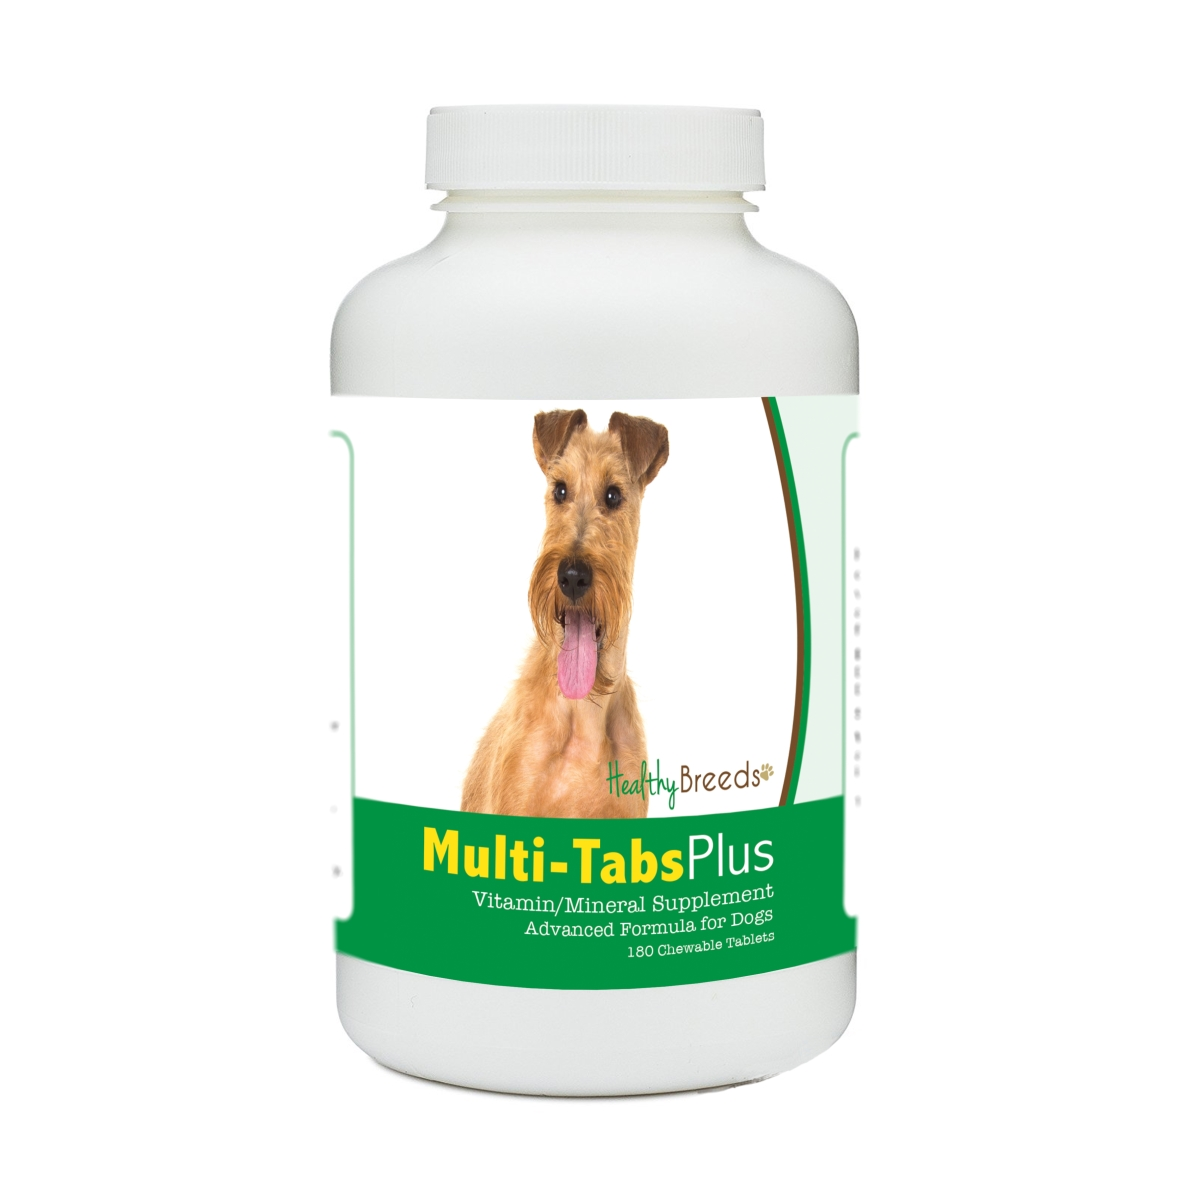 Healthy Breeds 840235181699 Irish Terrier Multi-Tabs Plus Chewable Tablets - 180 Count